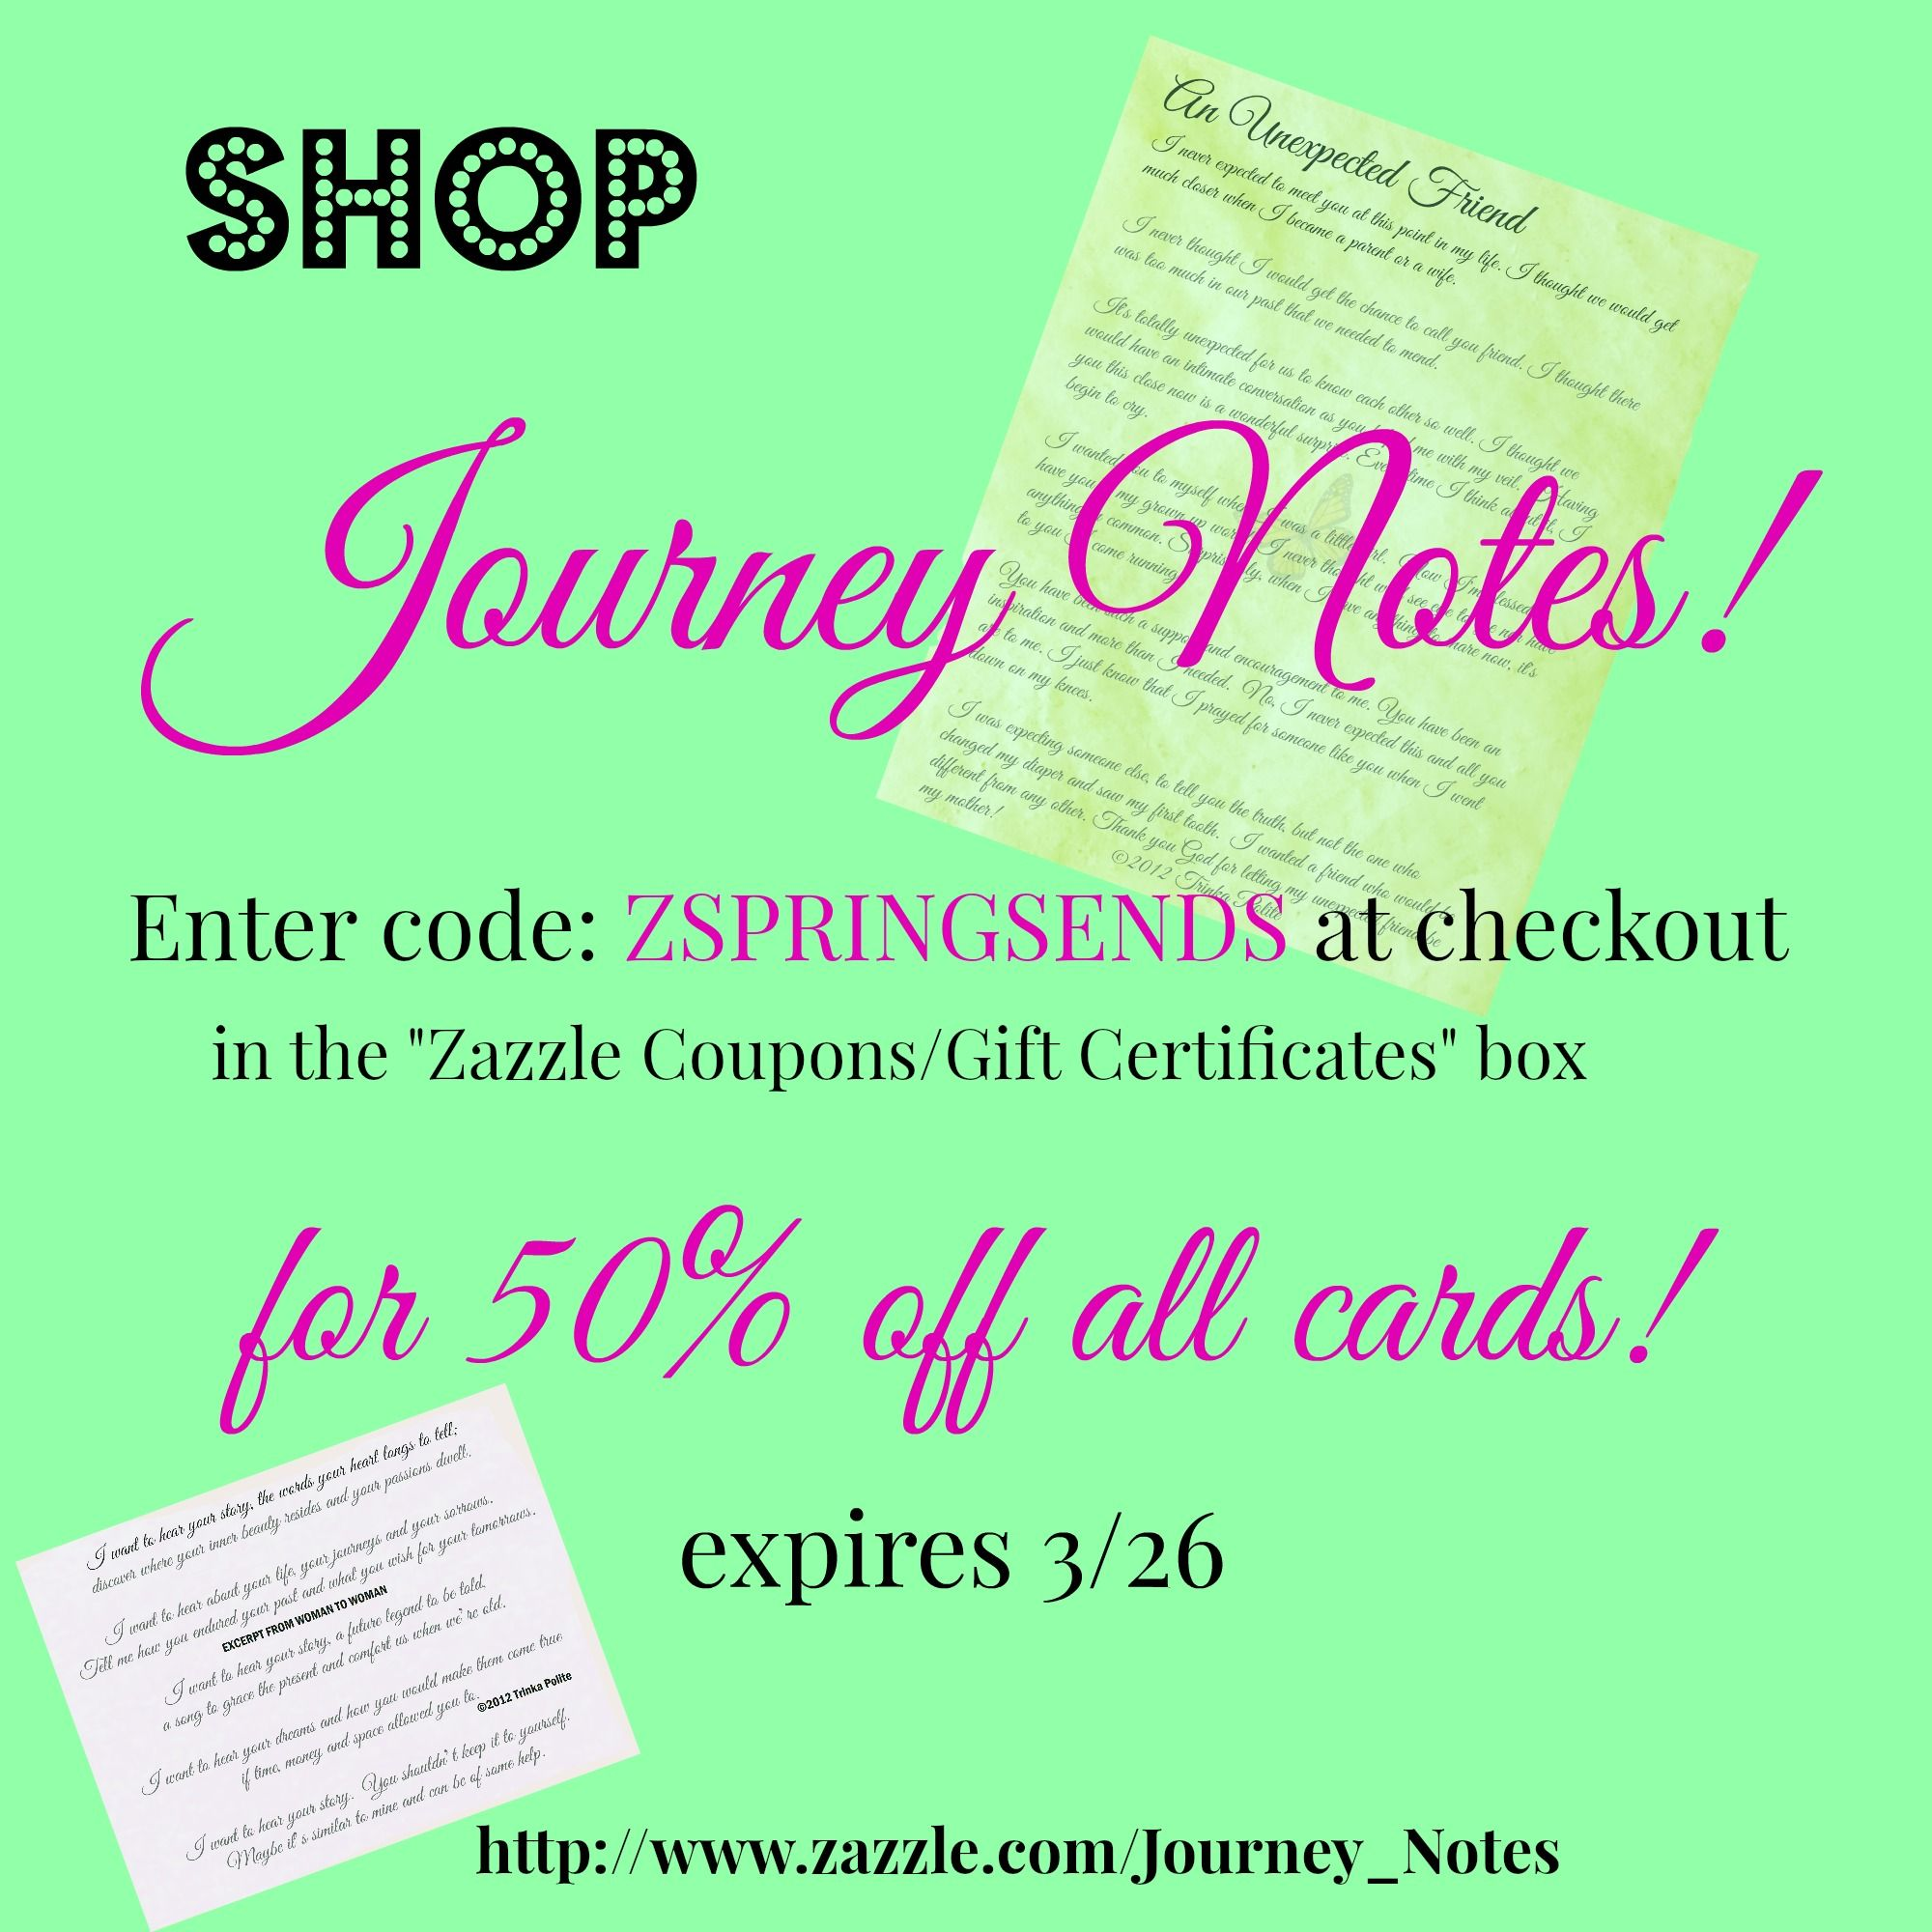 online gift certificates for small business vatoz atozdevelopment co